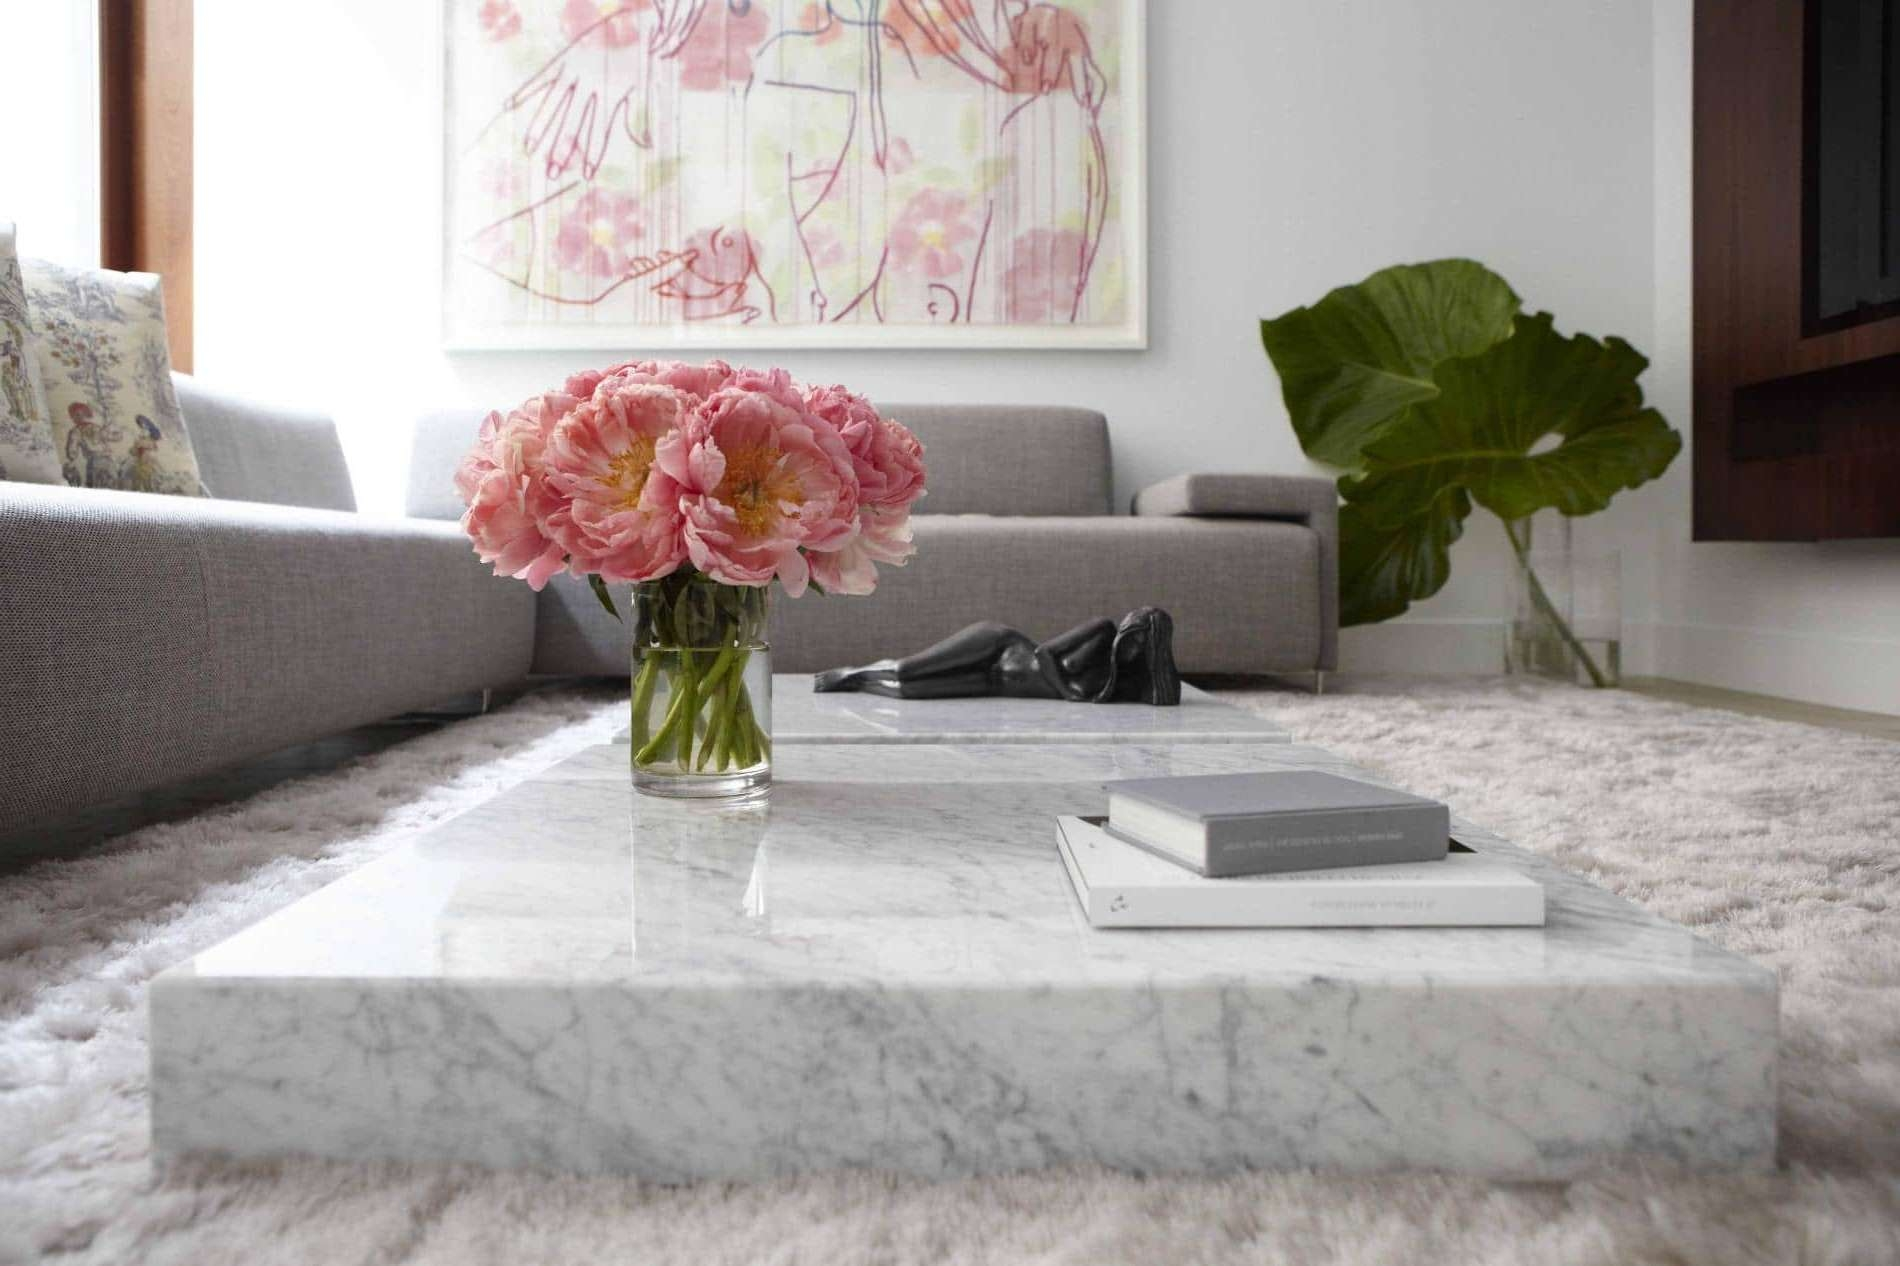 Marble Coffee Table Design, Style Ideas And Tips – Sefa Stone Inside Current Marble Coffee Tables (View 9 of 20)